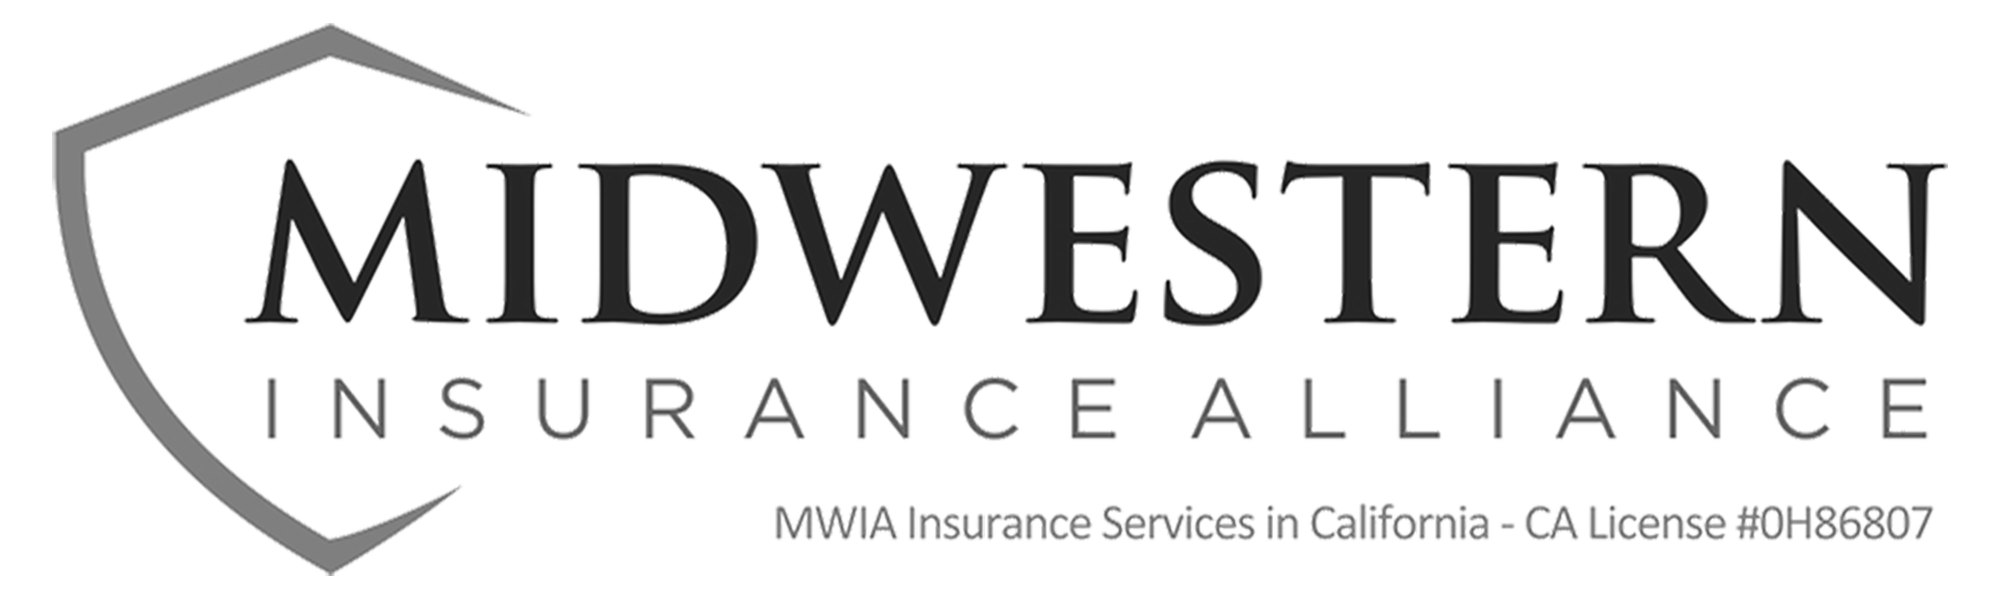 Midwestern Insurance Services